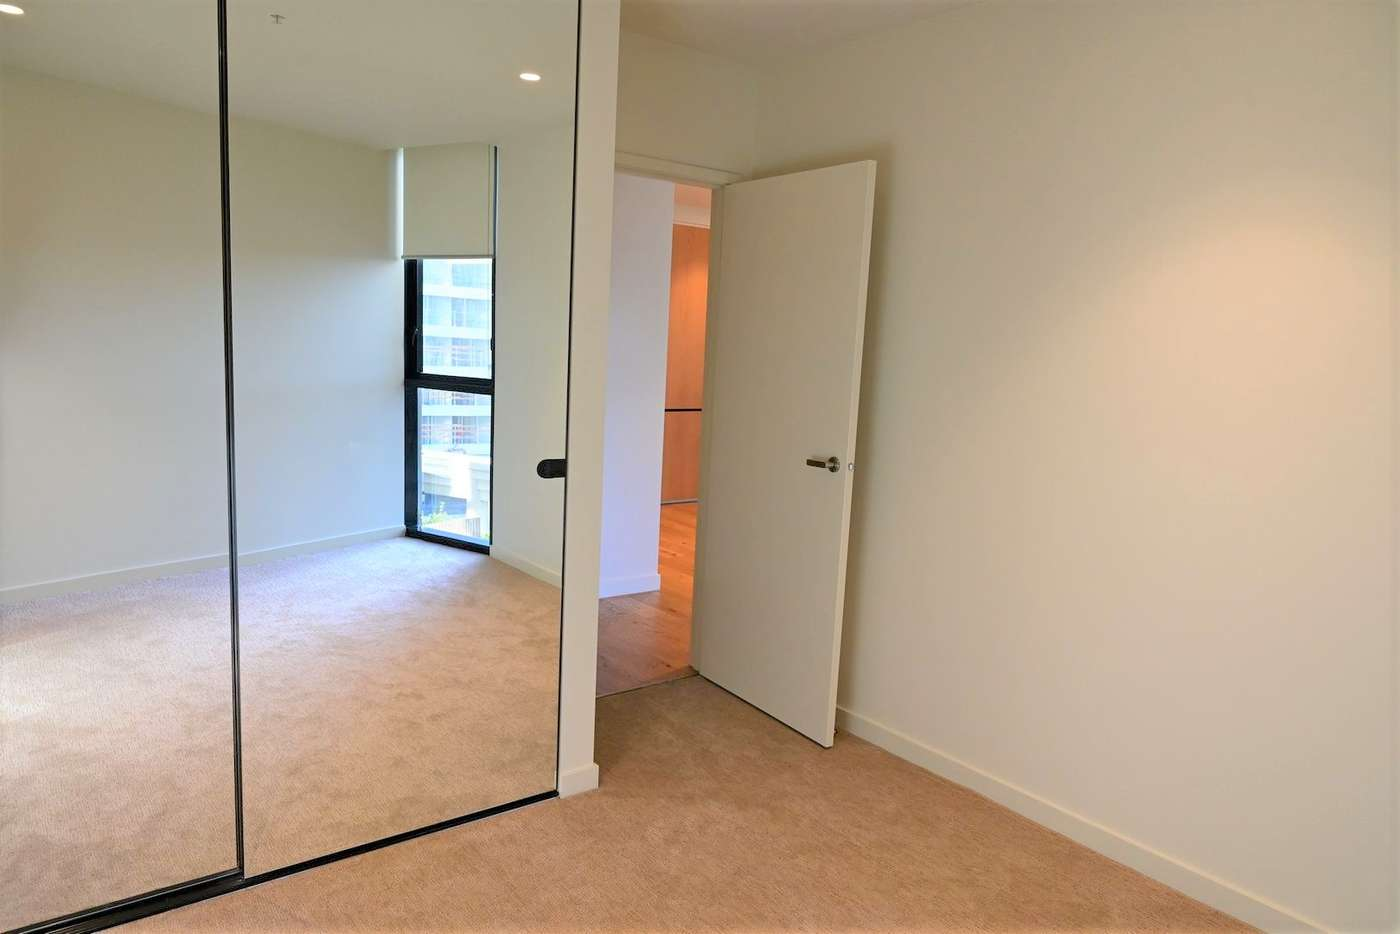 Sixth view of Homely apartment listing, 302/8 Daly Street, South Yarra VIC 3141